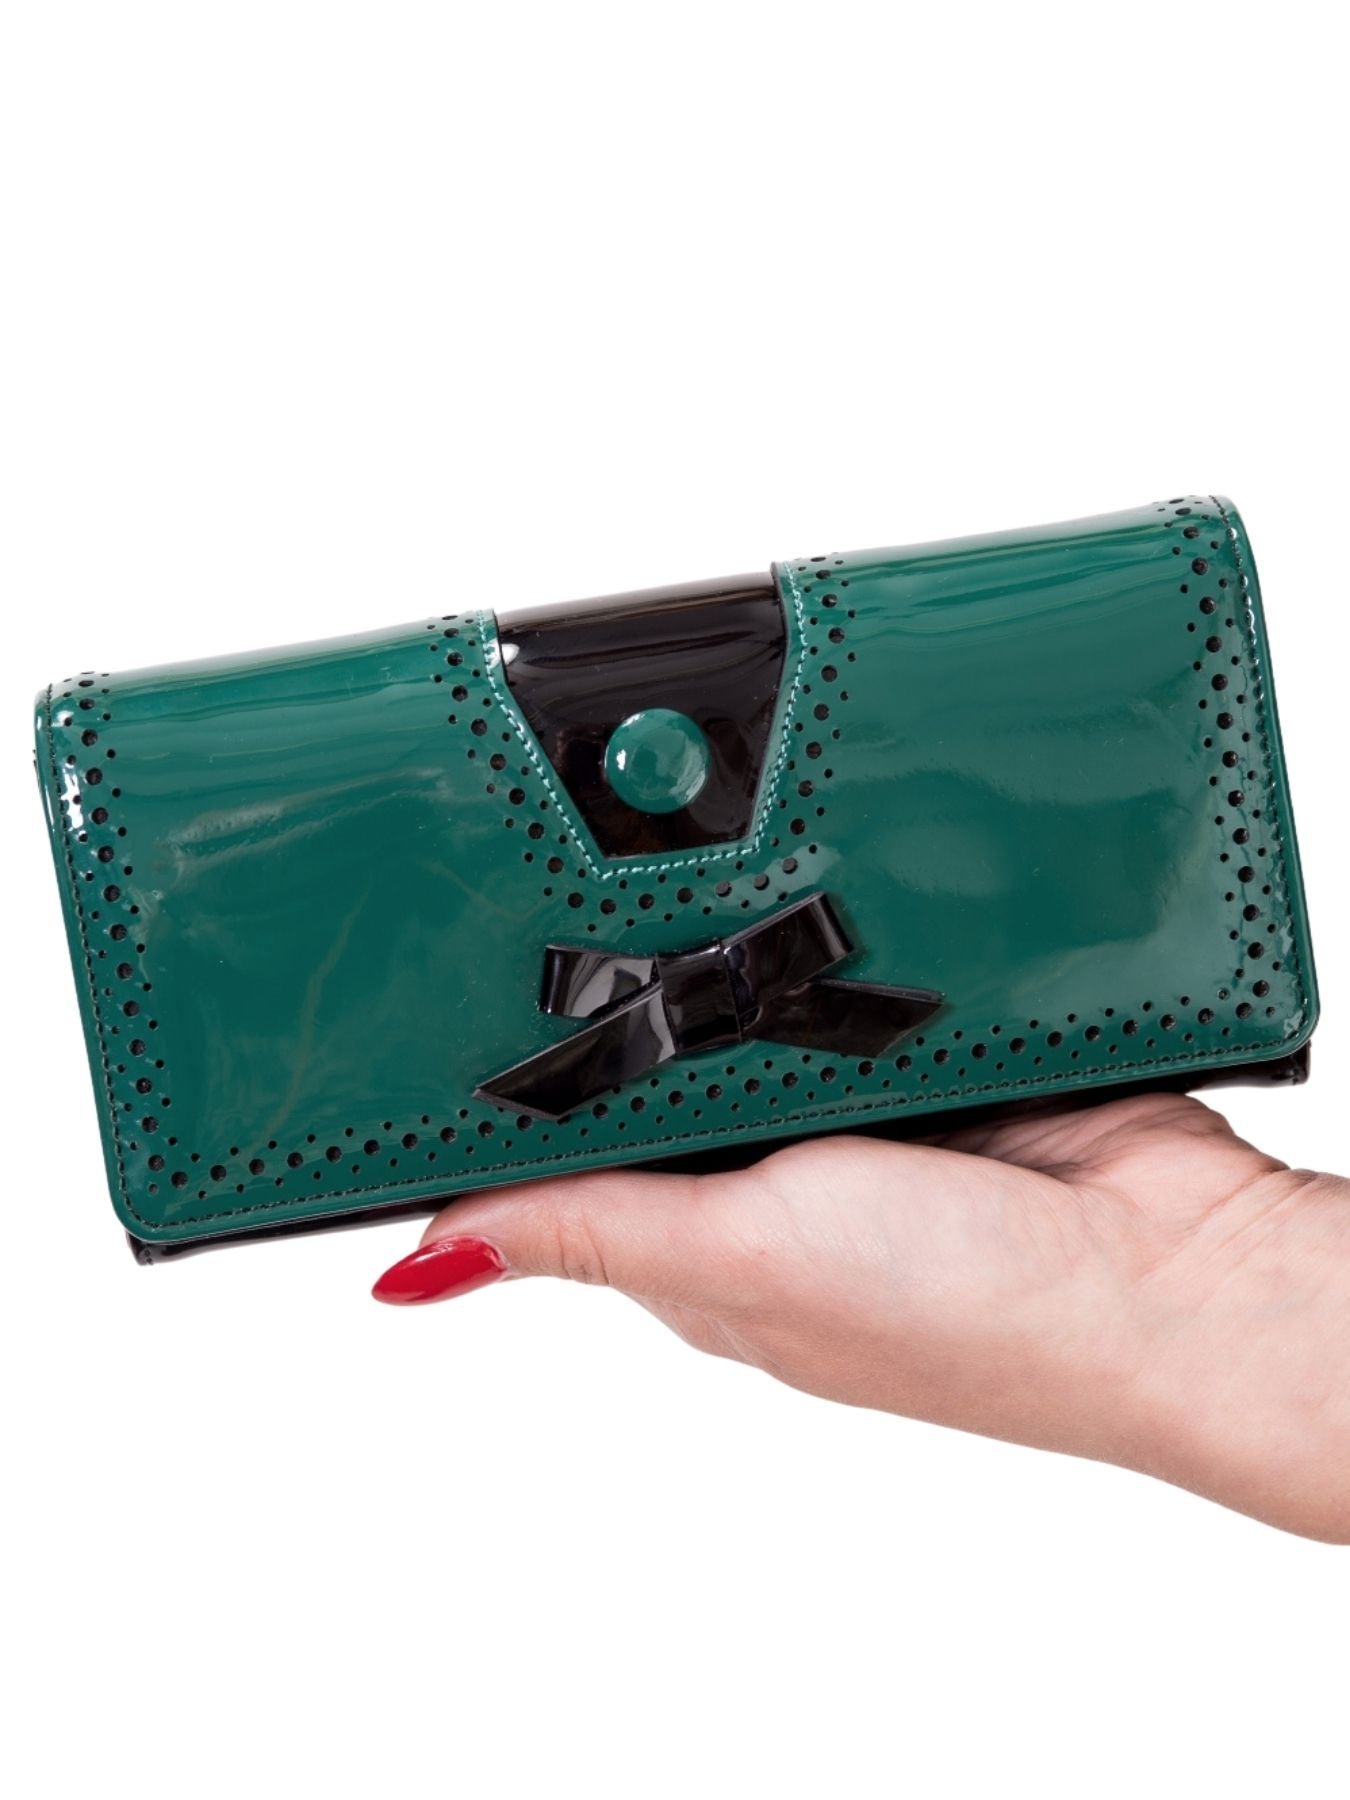 Banned Retro 50s Rosemary's Green Wallet - Bohemian Finds